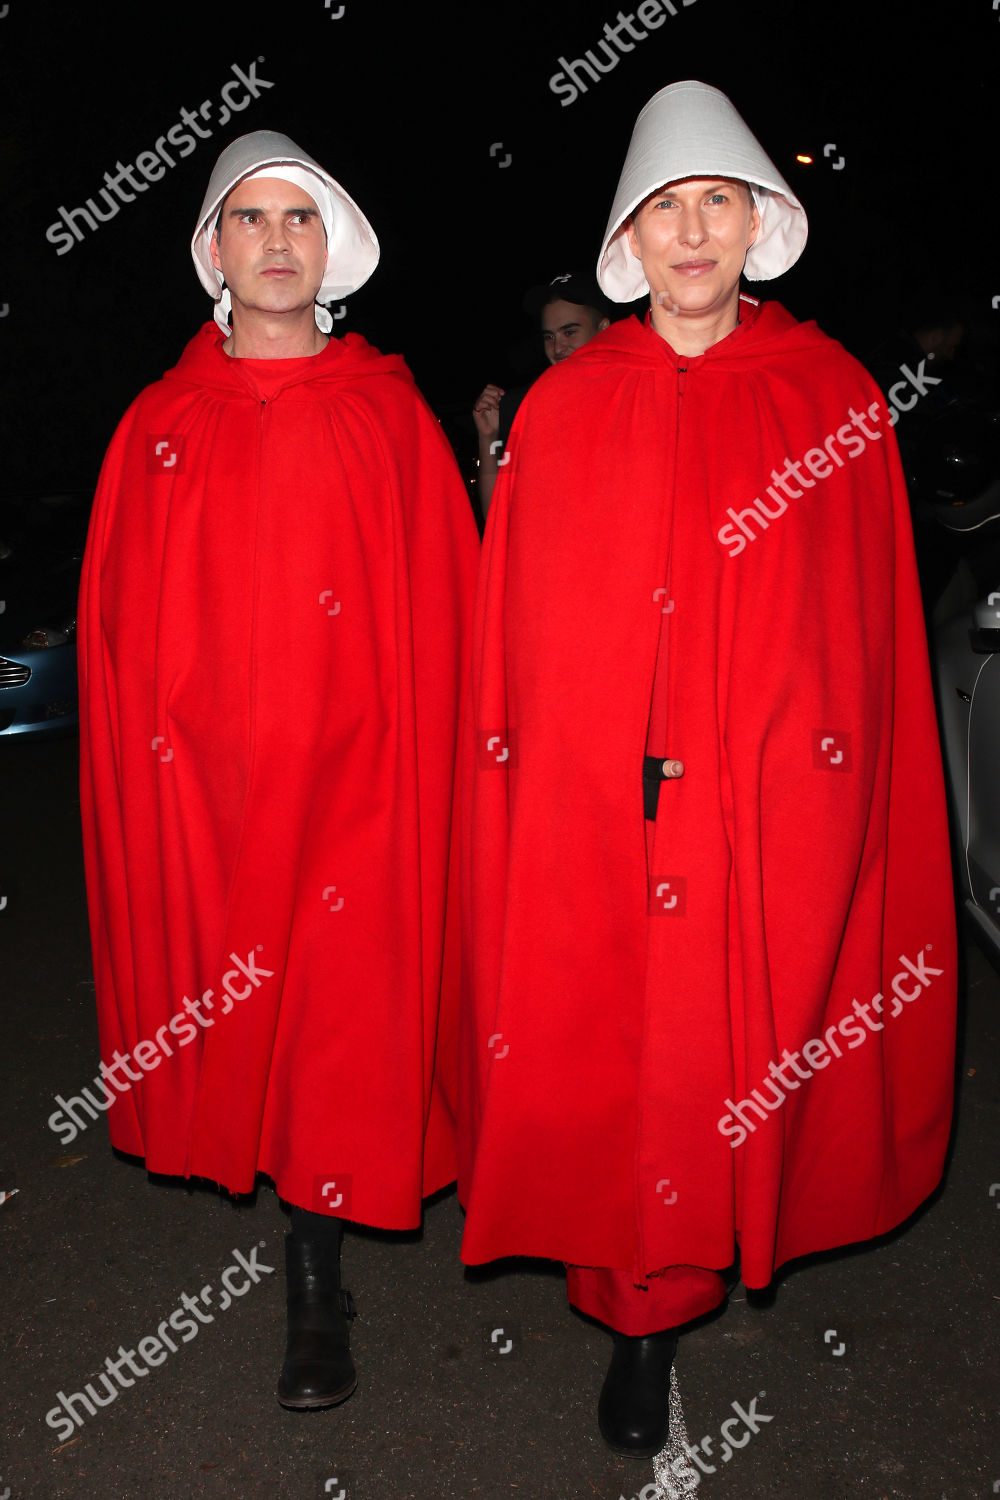 Jimmy Carr Karoline Copping Editorial Stock Photo Stock Image Shutterstock Find the perfect karoline copping stock photos and editorial news pictures from getty images. https www shutterstock com editorial image editorial jonathan ross halloween party london uk 31 oct 2019 10462025bt